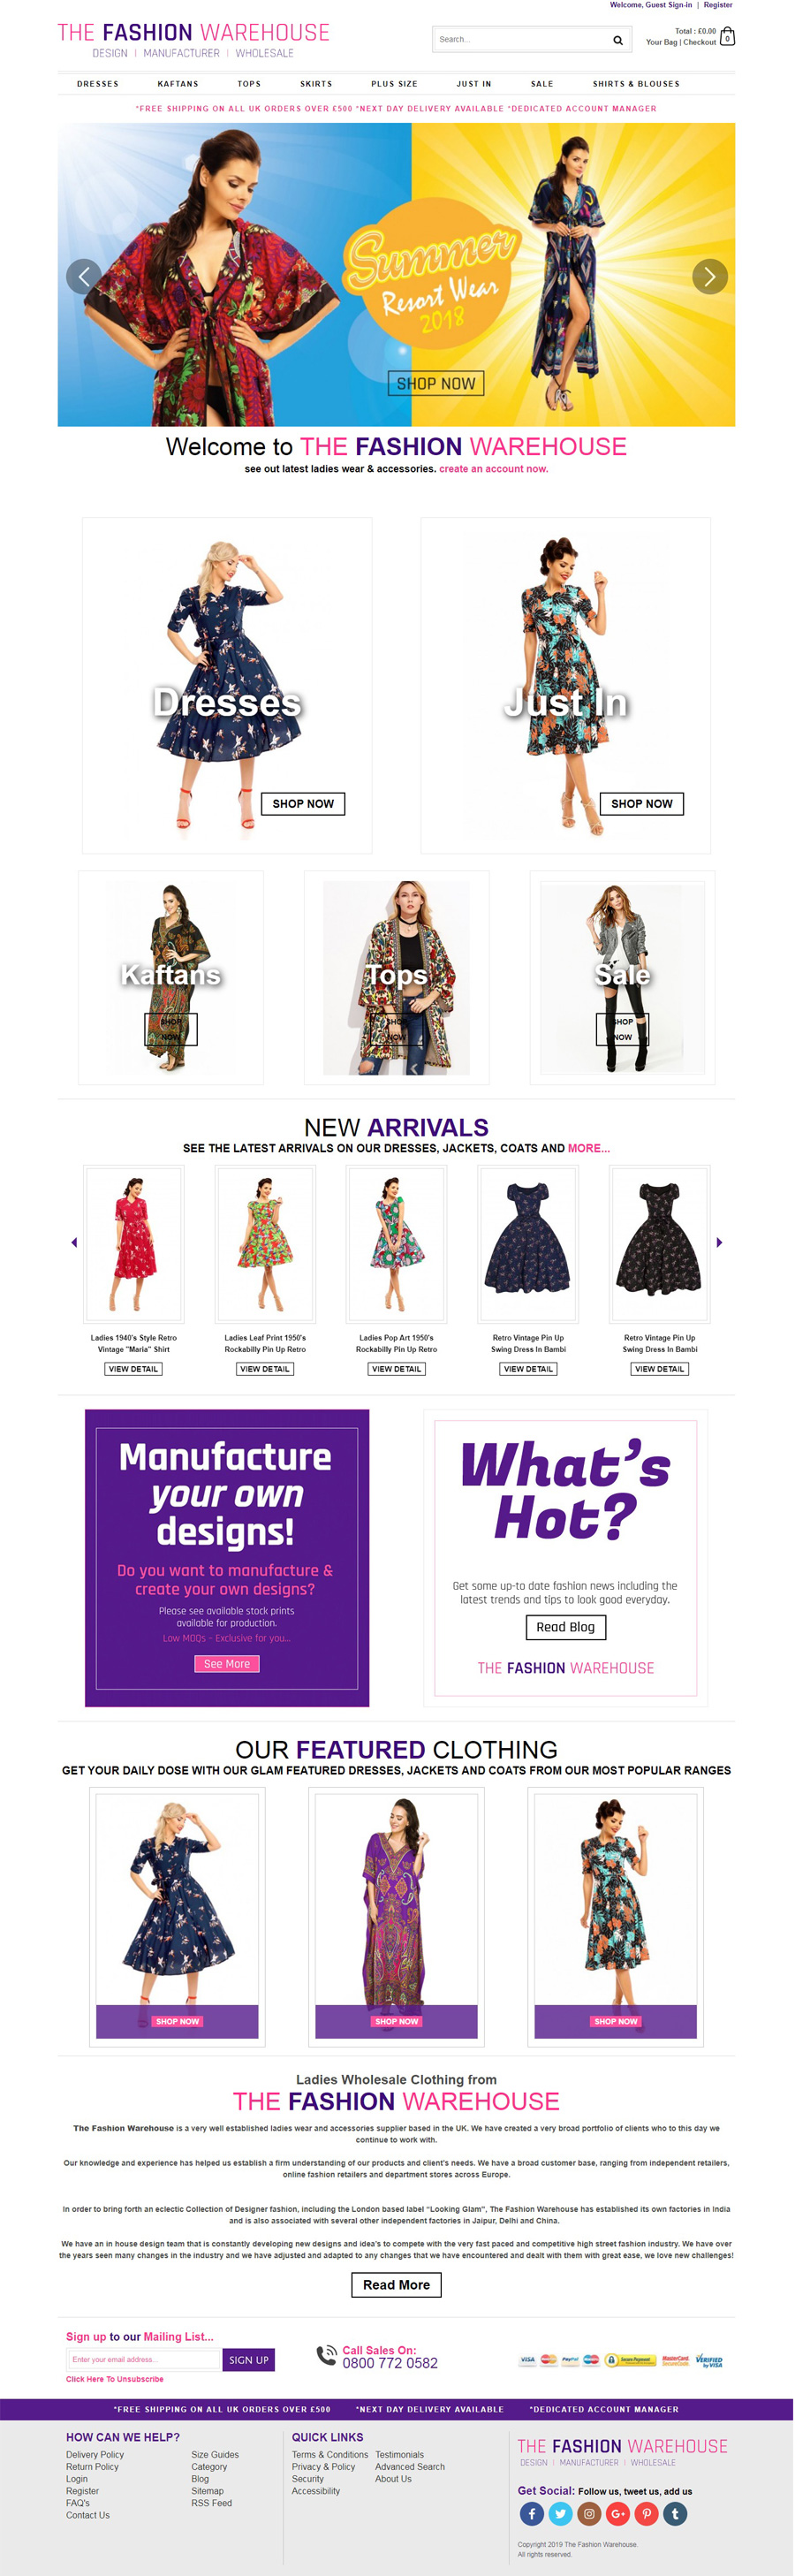 THE FASHION WAREHOUSE - SEO Portfolio